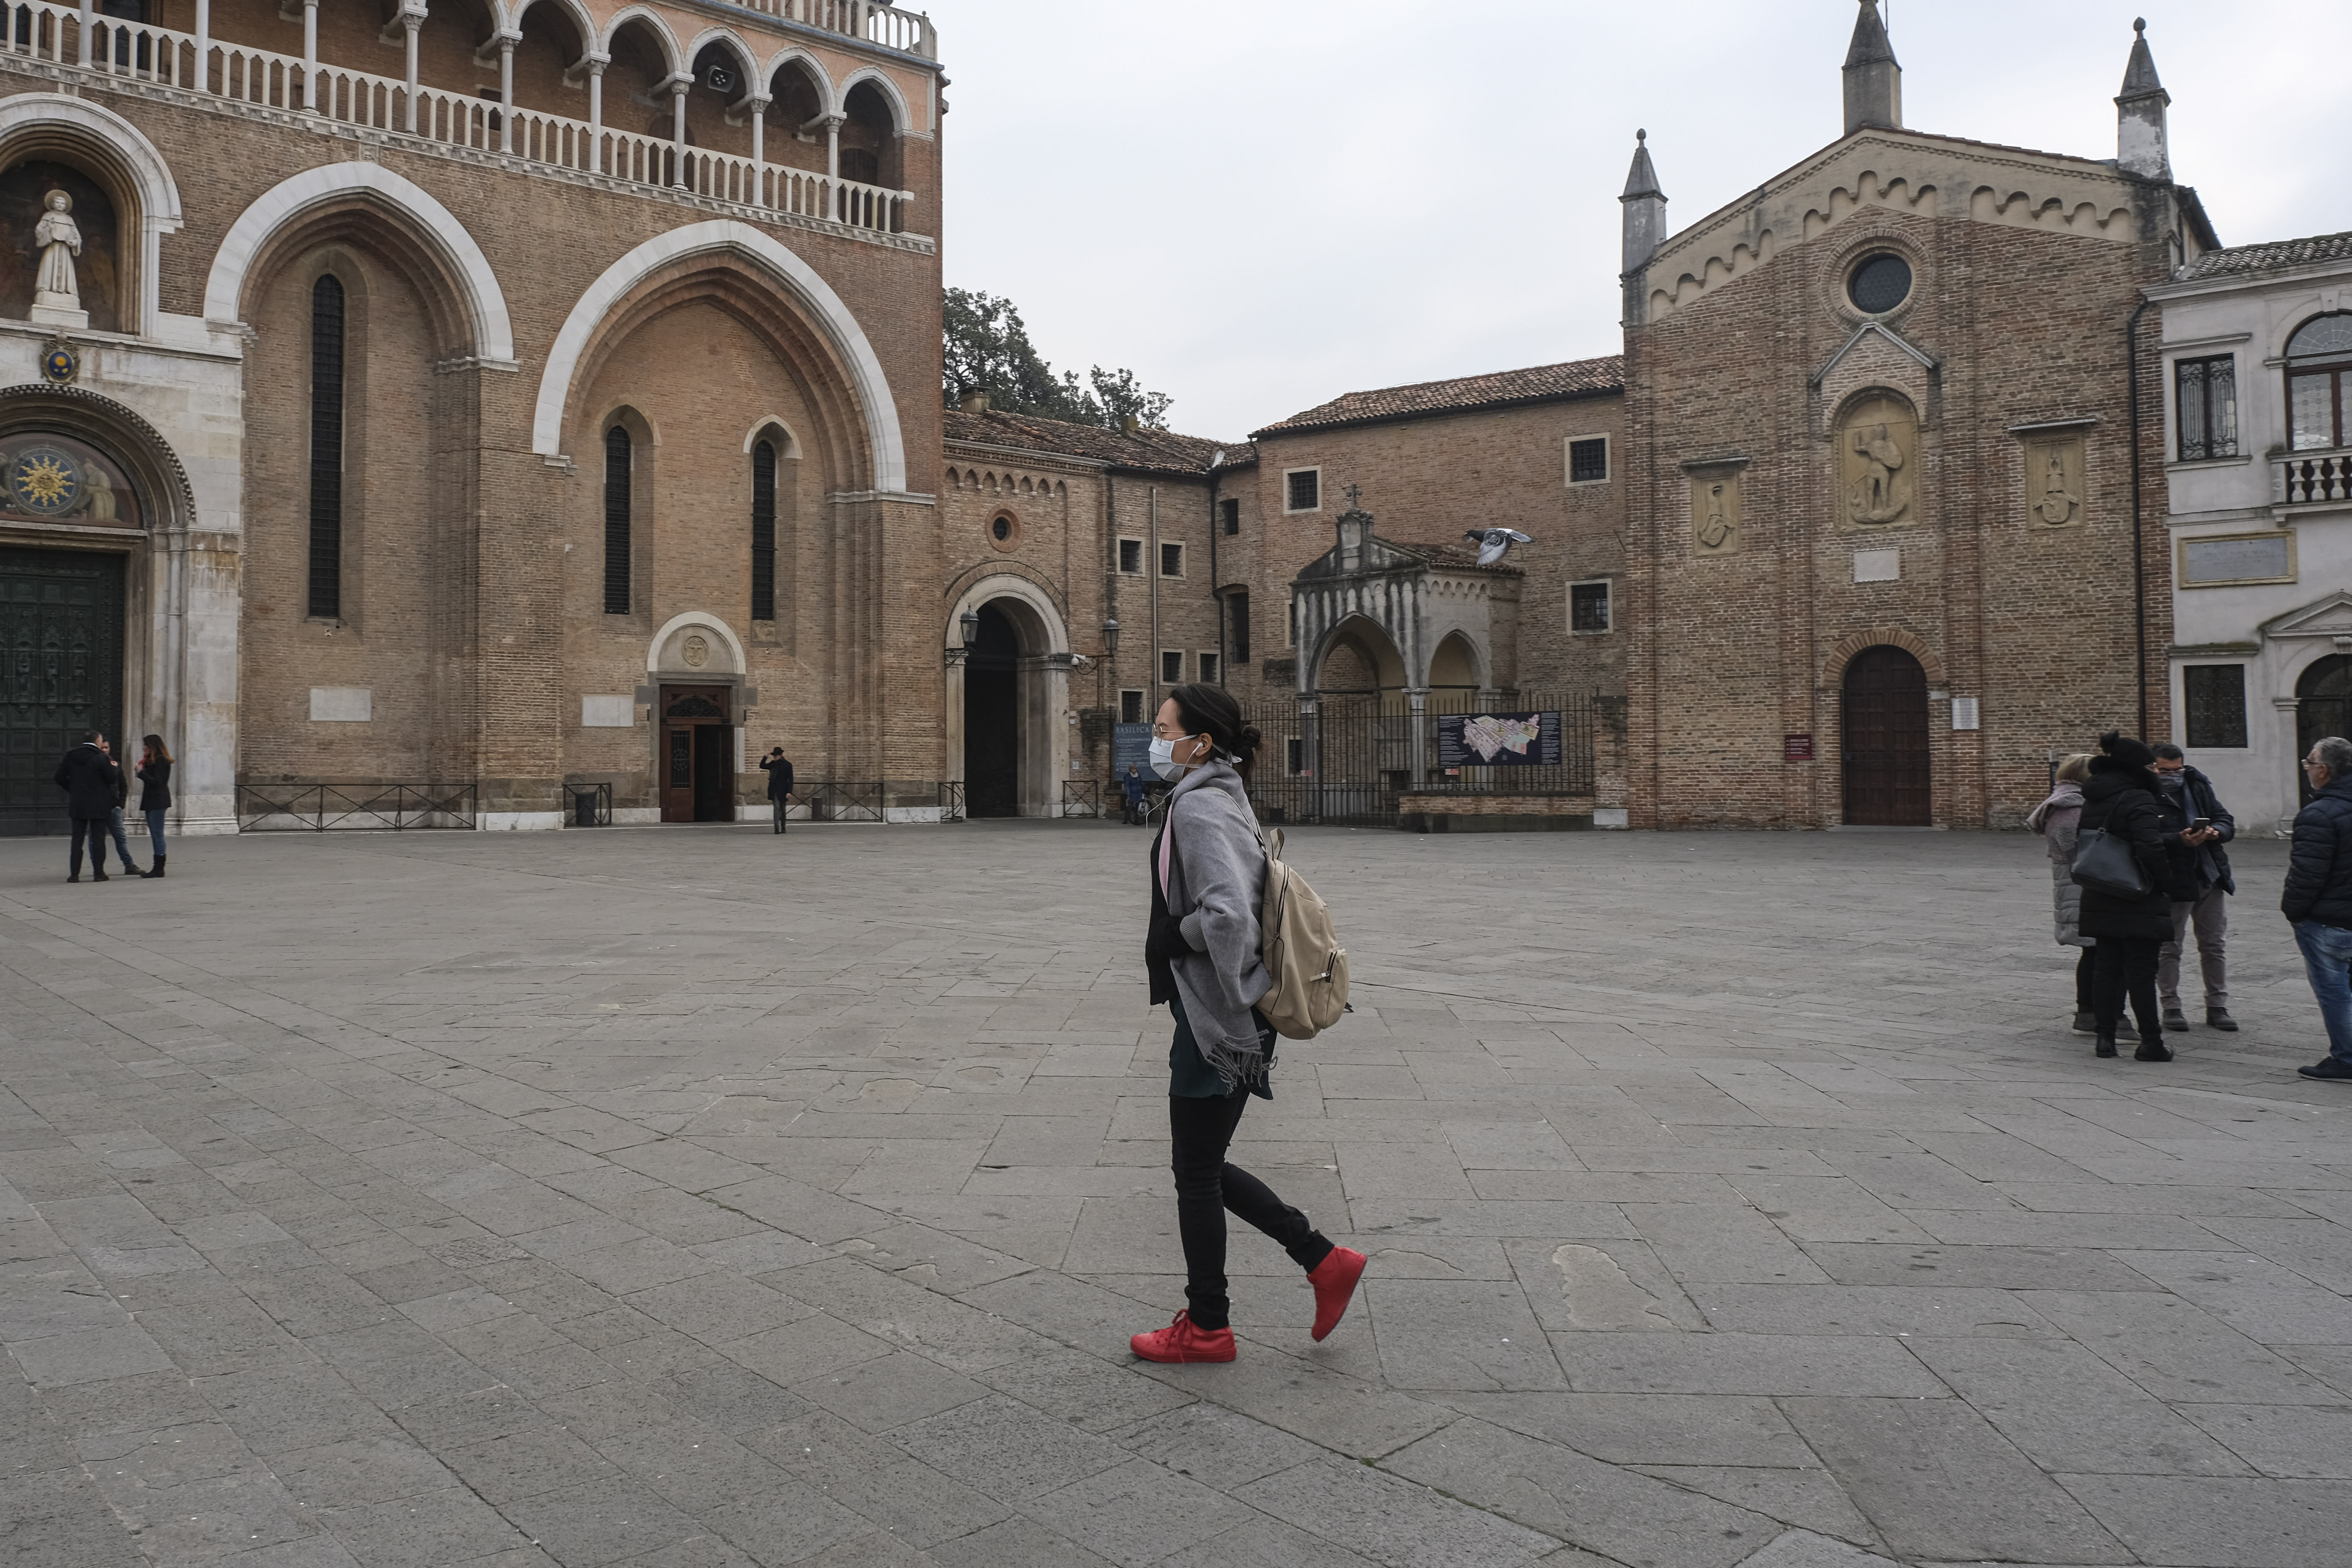 A group of Chinese tourists in Piazza del Santo wears protective masks in Padua, Italy, on February 24, 2020. More than 220 people were infected by Covid-19 in Italy, with 6 people deaths. Italy is at the third place in the world ranking as infected countries, after China e South Korea. Italy has disposed the closure of schools, university, pubs and imposed a stop to religious functions in Lombardia and Veneto regions. (Photo by Roberto Silvino/NurPhoto via Getty Images)